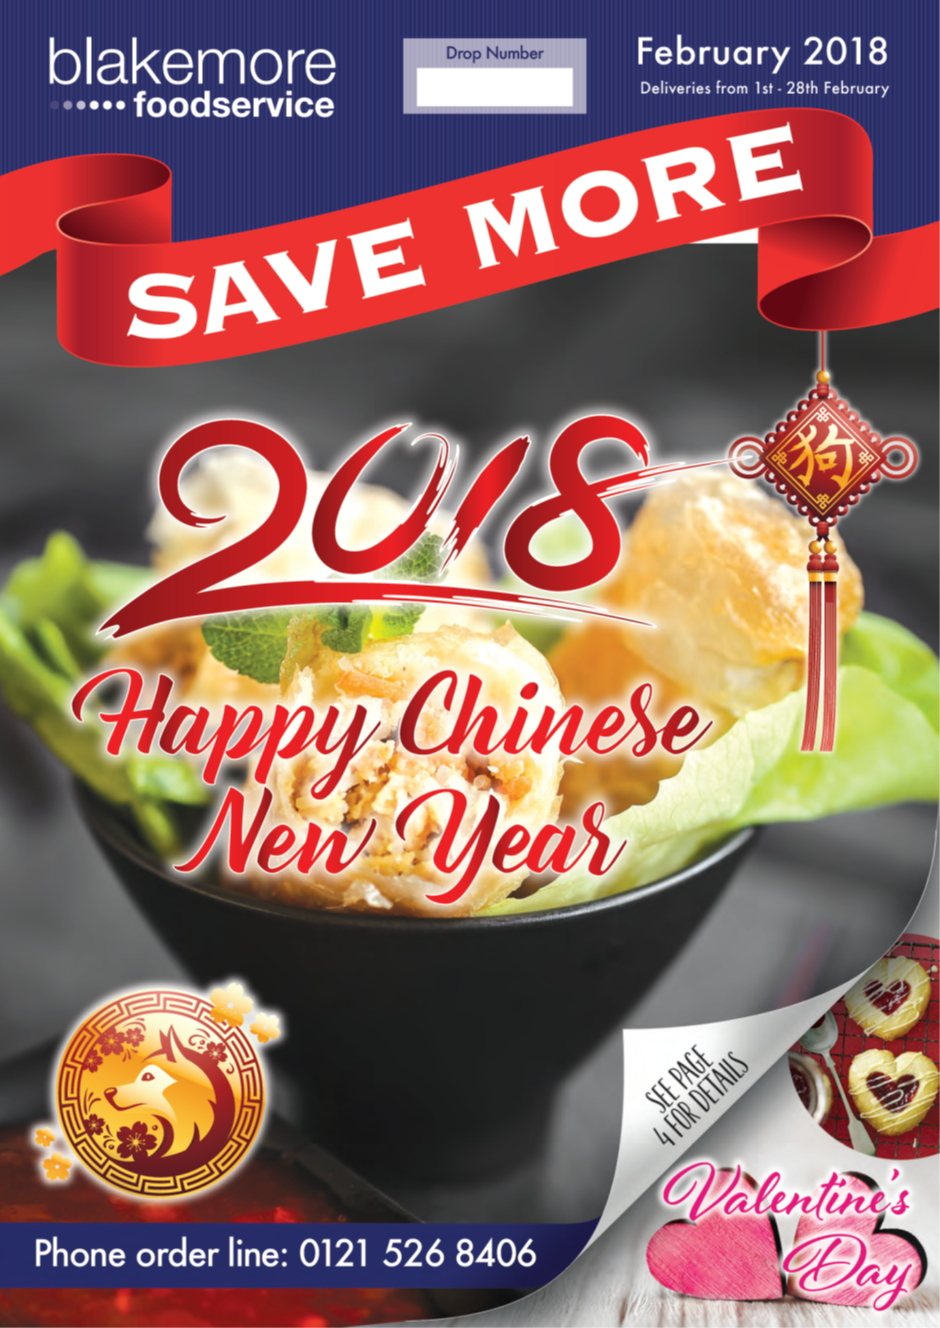 Blakemore_Foodservice_Promotions_February_2018